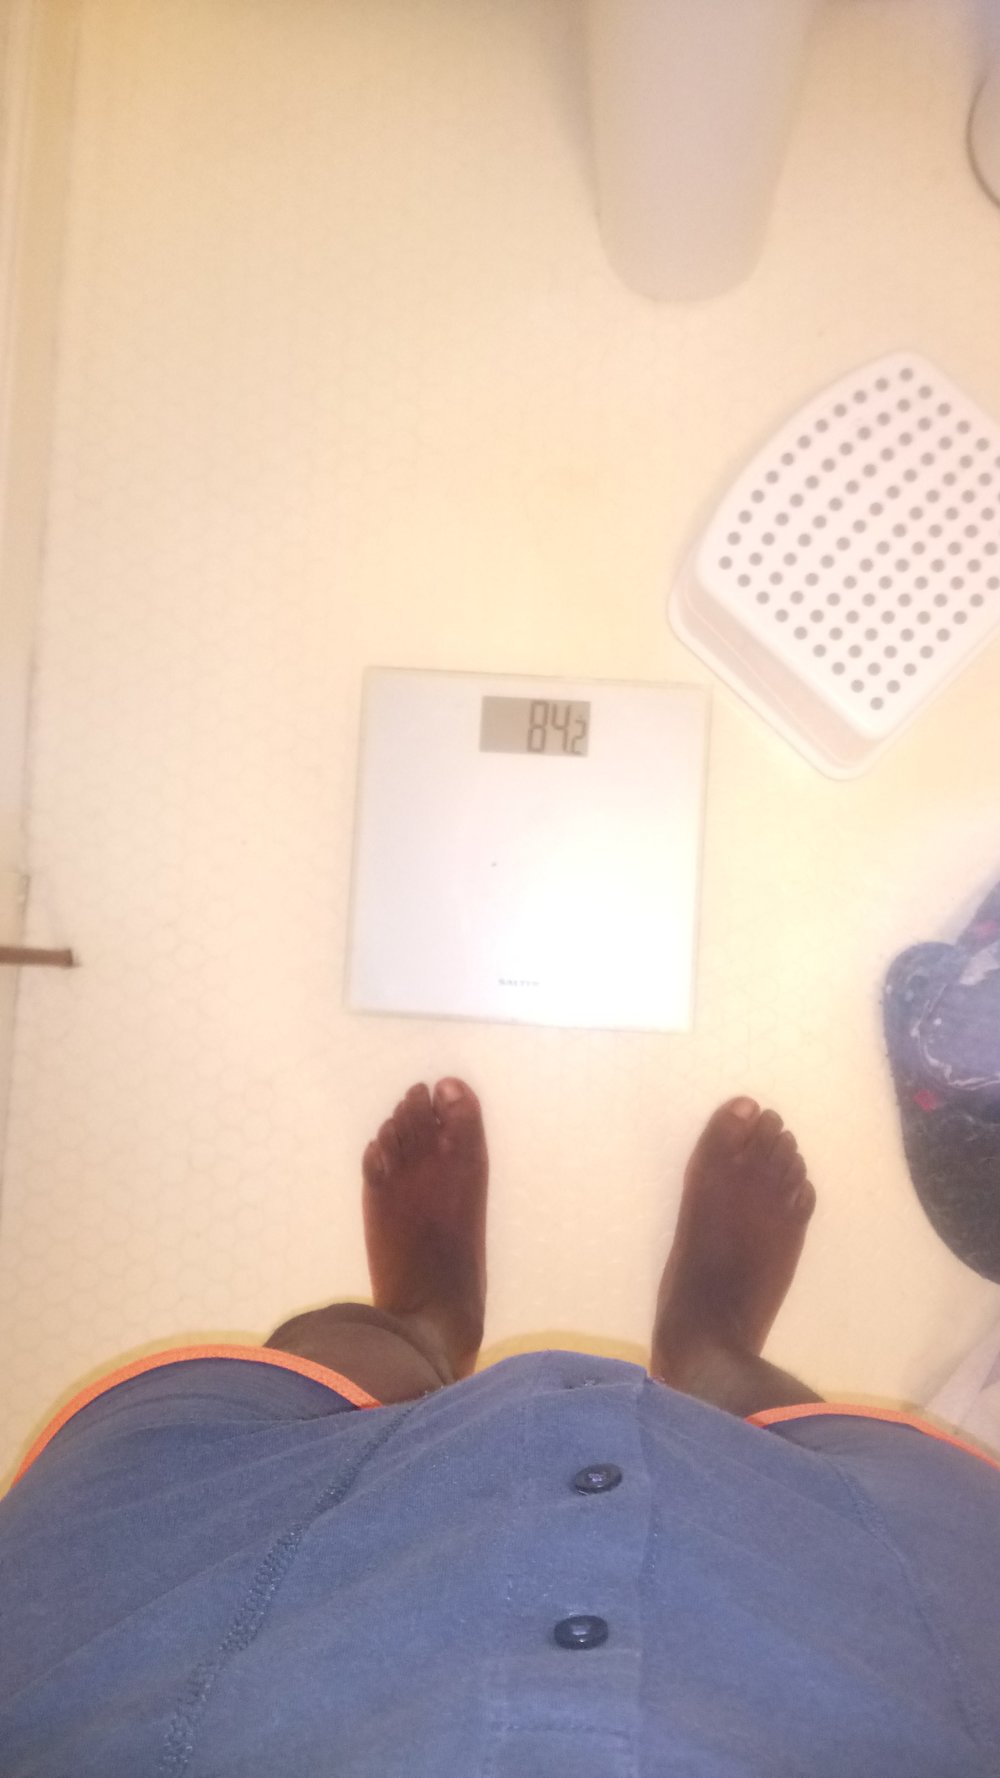 Lost 1.2kg in a week!!